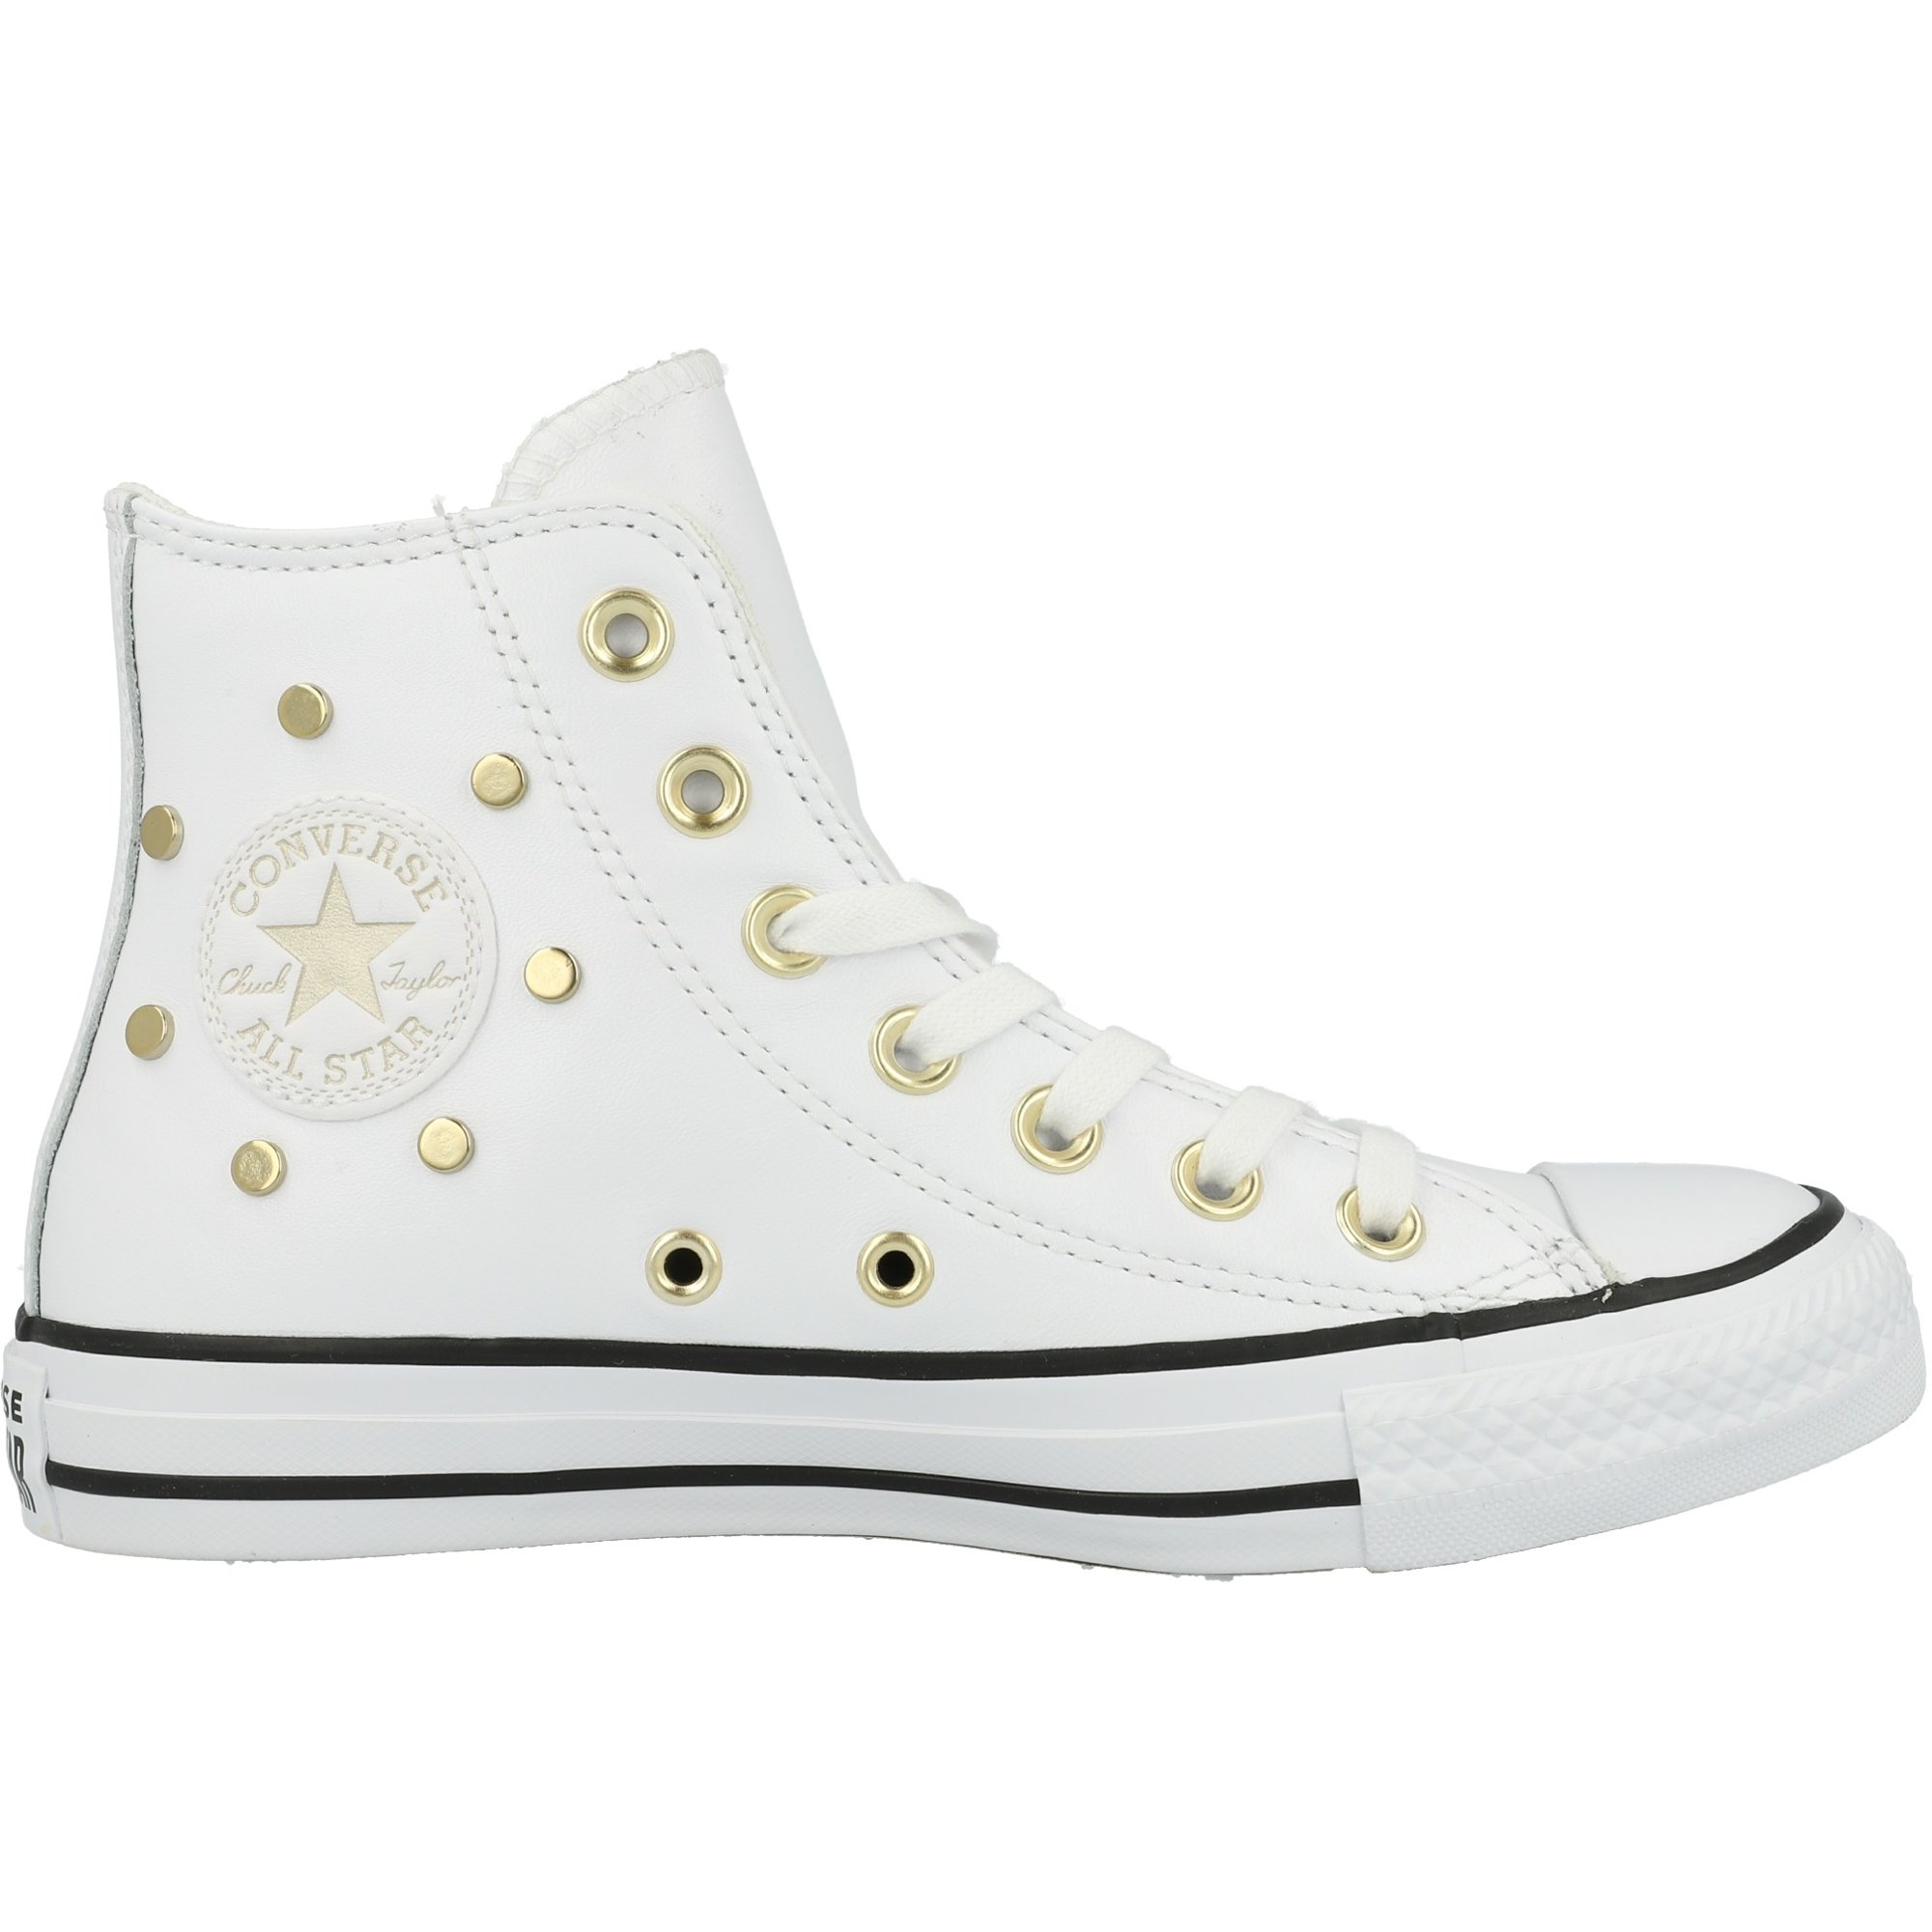 Converse Chuck Taylor All Star Hi Leather Studs White/Black/Light Gold Leather Adult